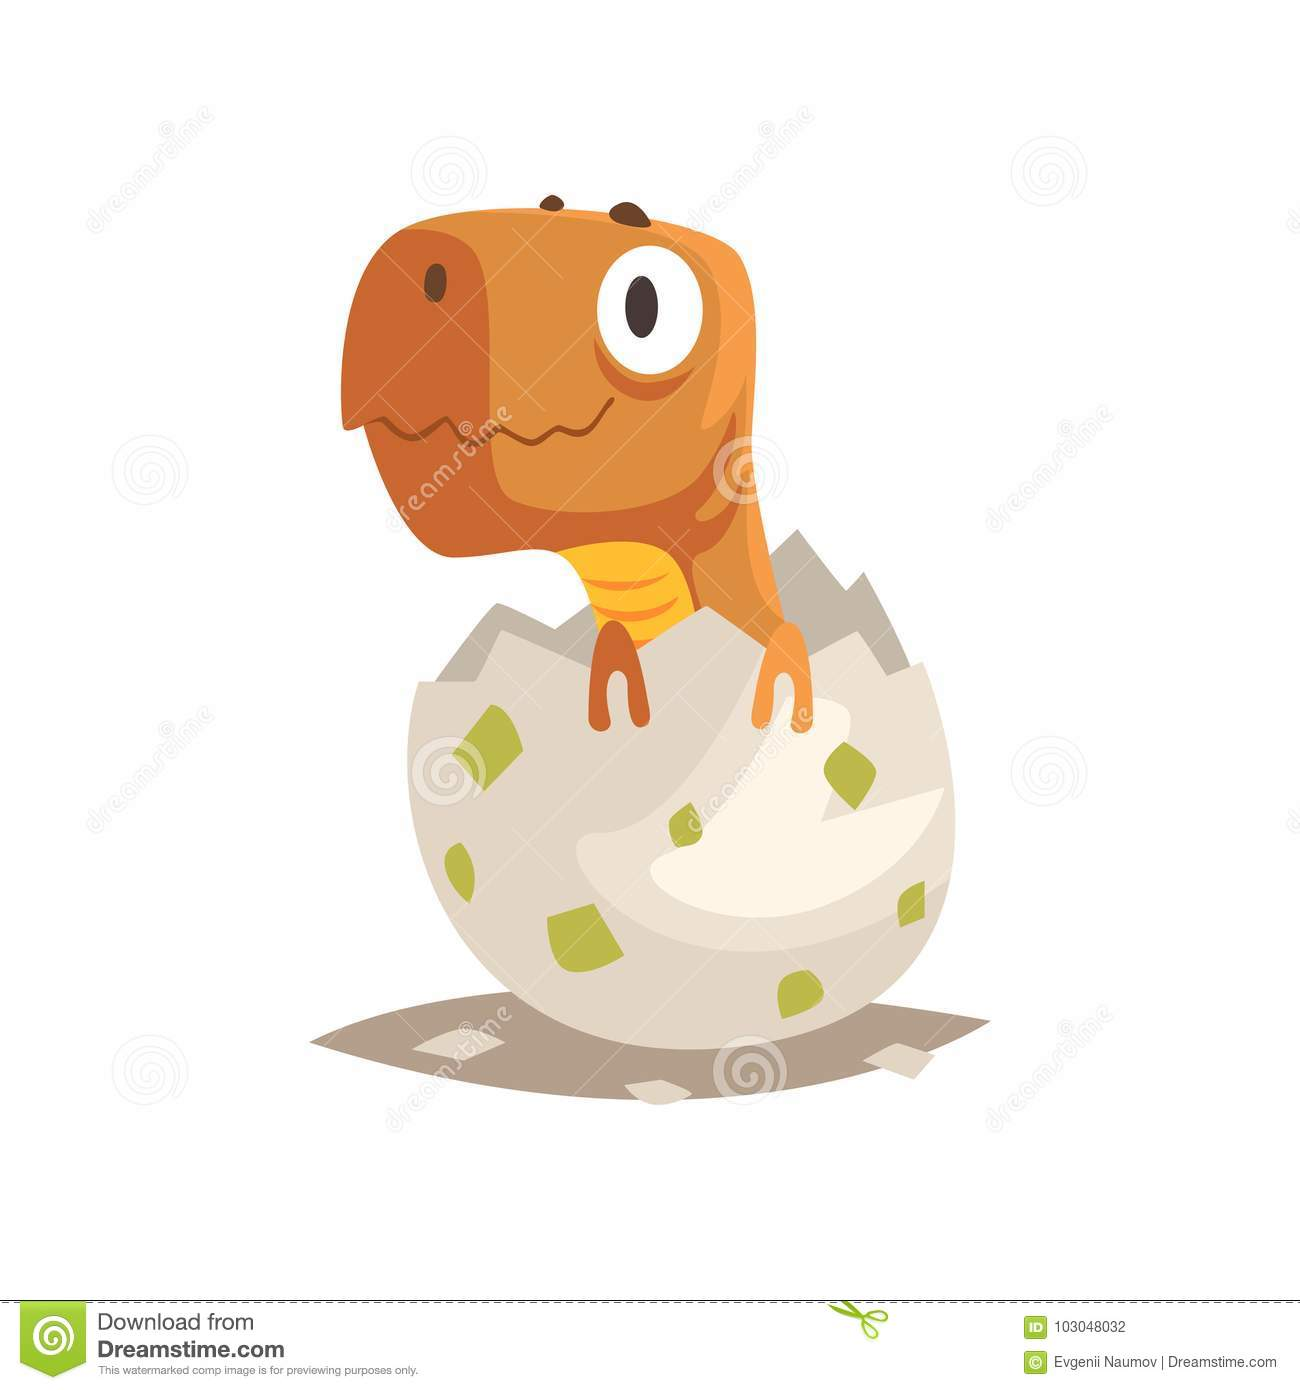 Baby reptile hatching from egg little cub creature life extinct animals flat cartoon tiny pet character birthday cute emoji vector isolated on white